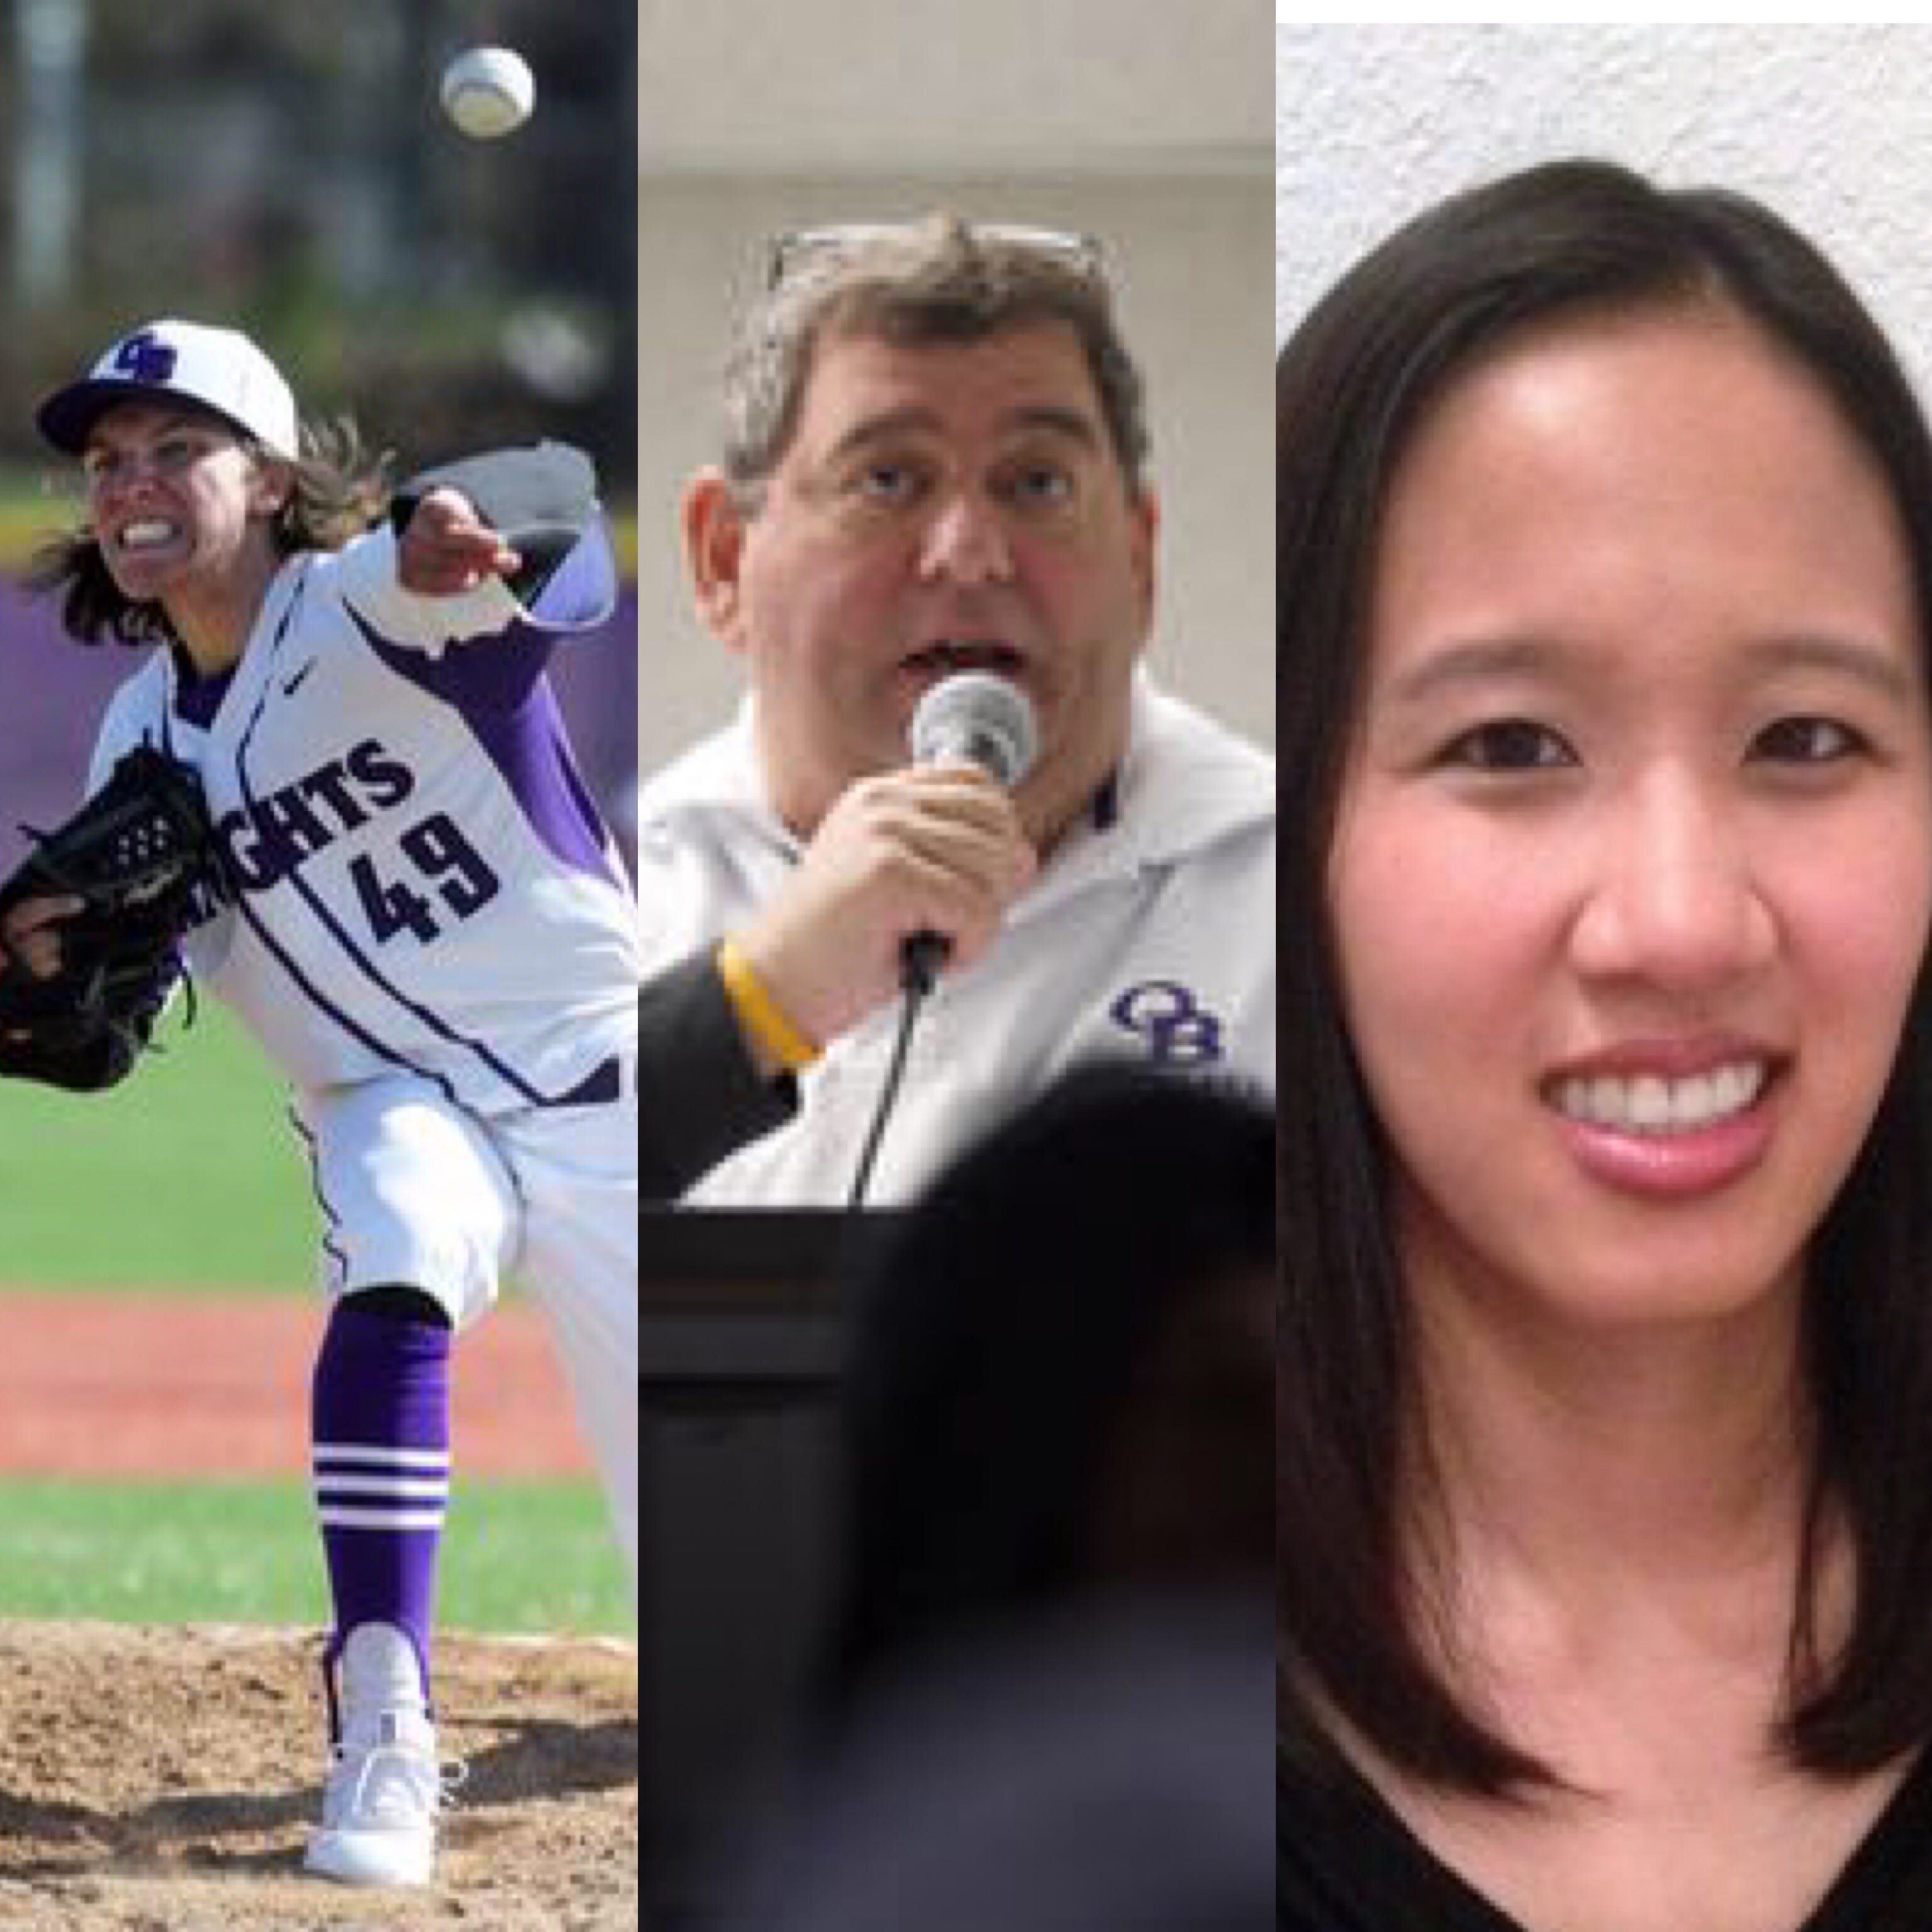 Zach Attianese, Ron Mazzola and Natalie Leong were inducted to the Old Bridge Wall of Fame on Monday night